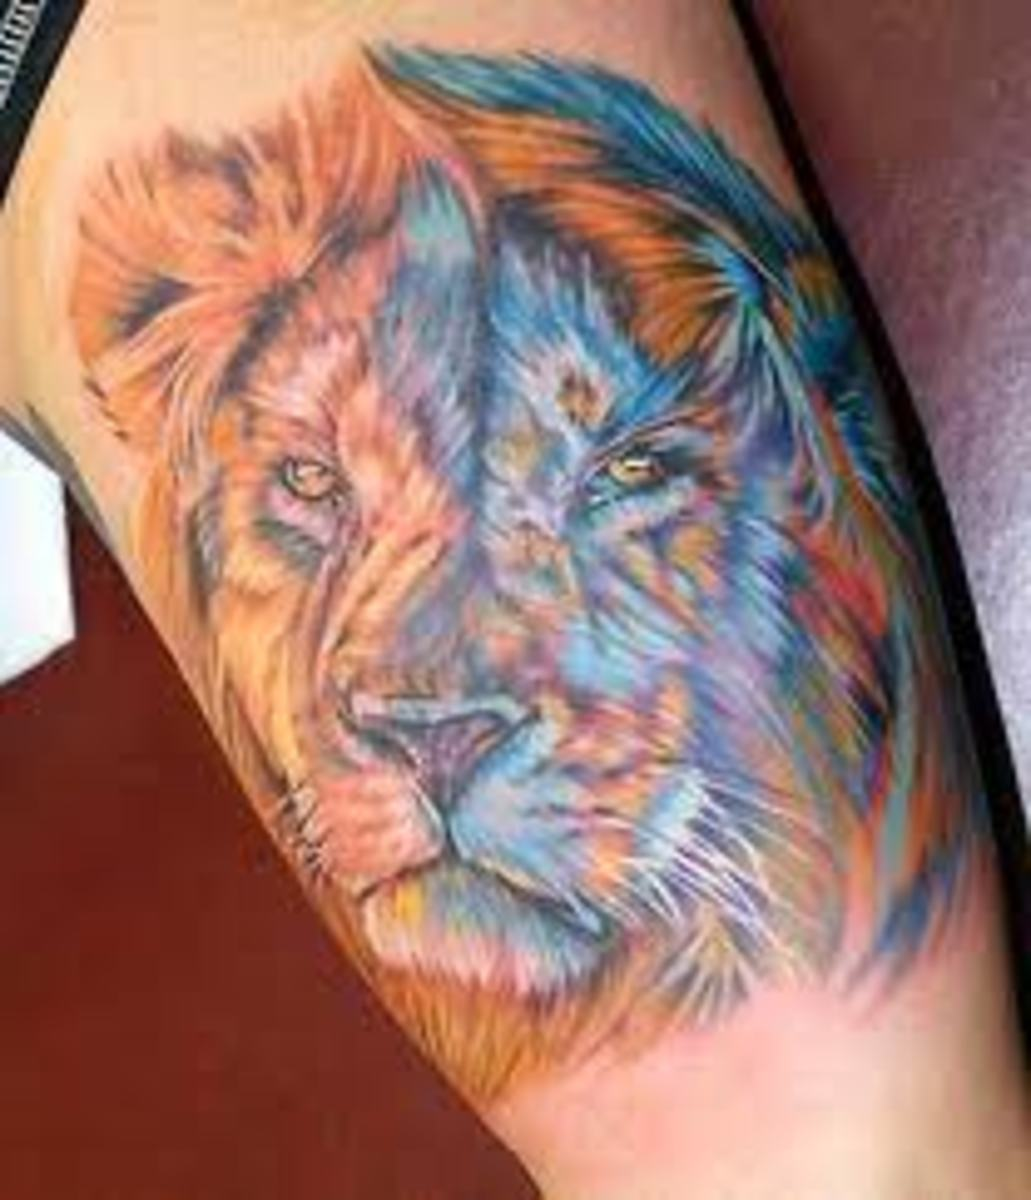 The Lion Tattoo, Designs, And Meanings; Great Lion Tattoo Ideas; History Of Lion Symbolism